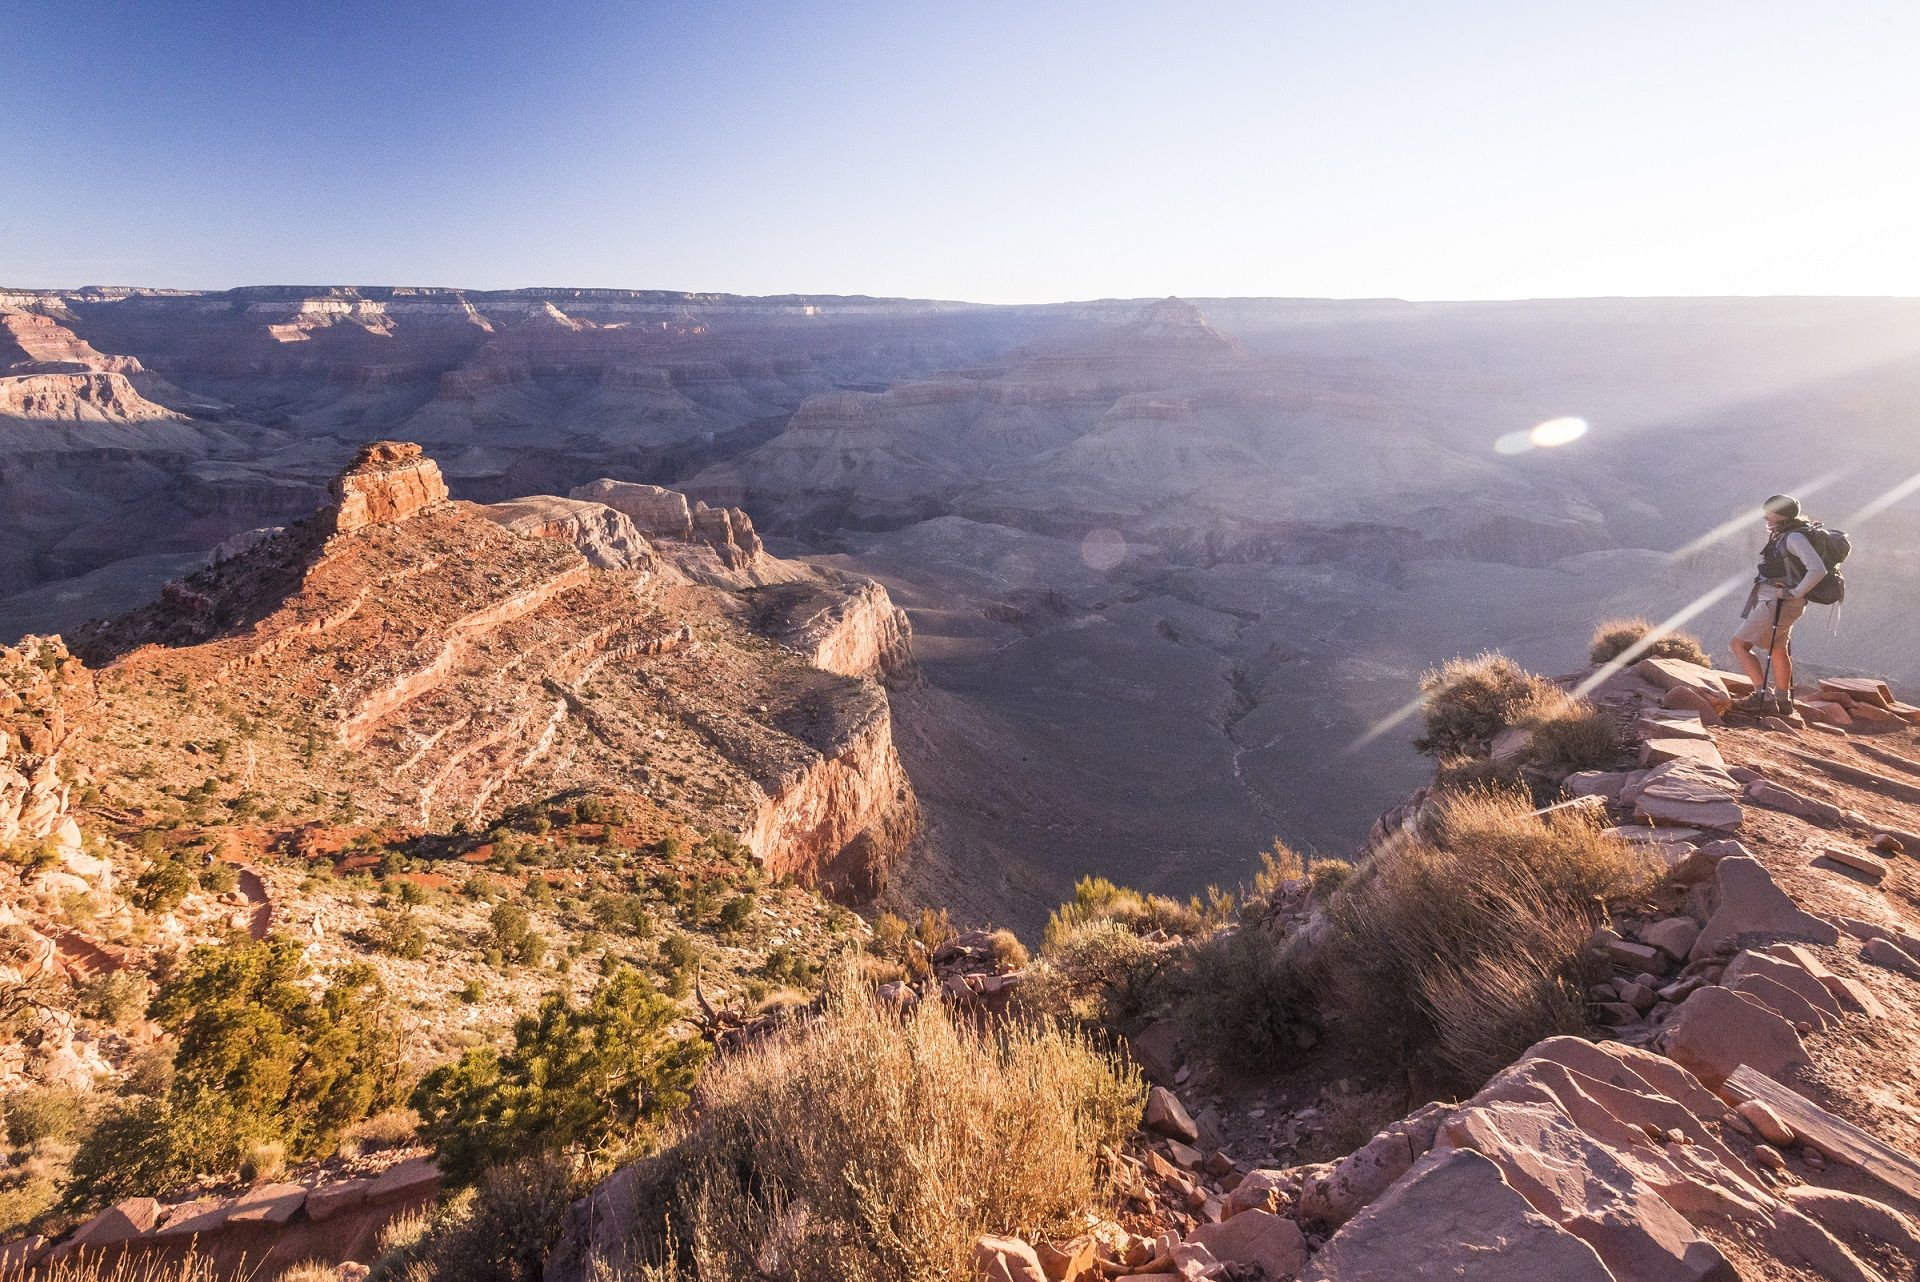 5 Reasons We Need to Fight for the Grand Canyon...Again